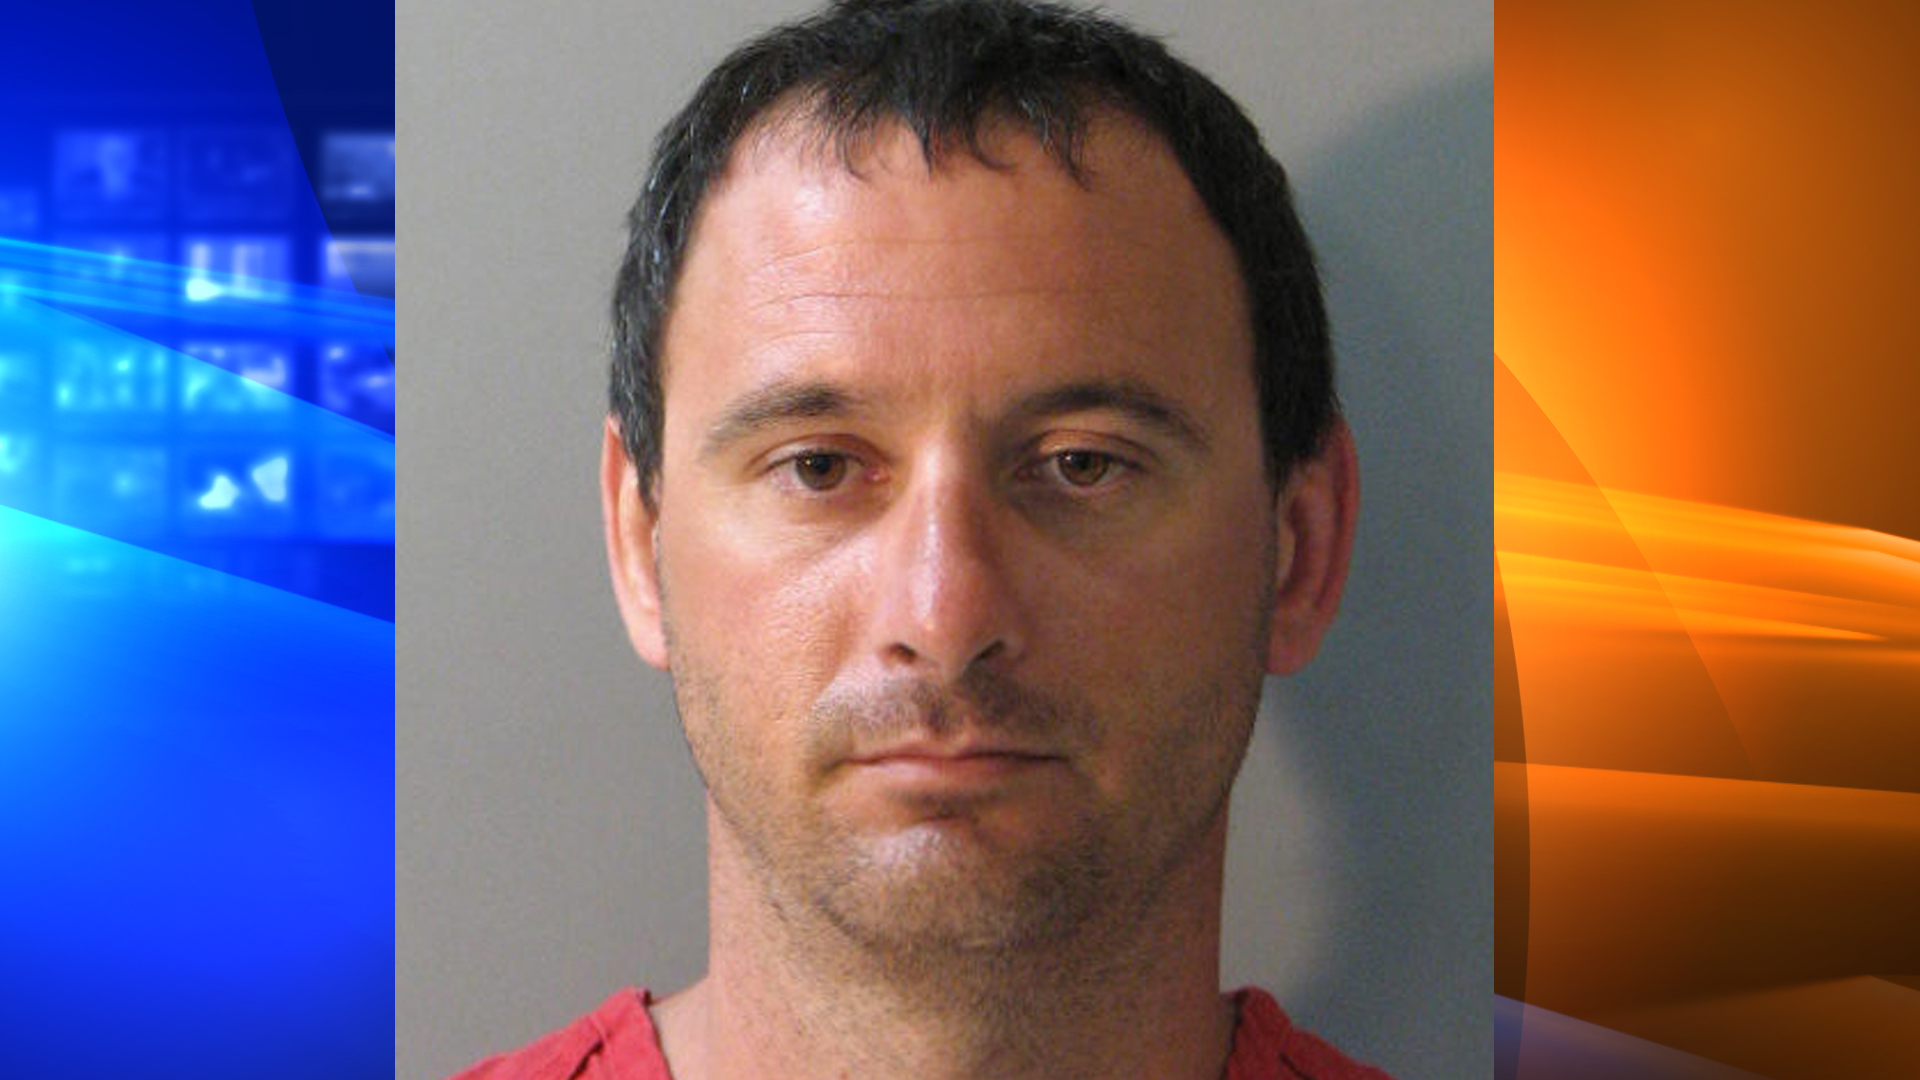 Charles Hebert is seen in an image provided by the Lafourche Parish Sheriff's Office.